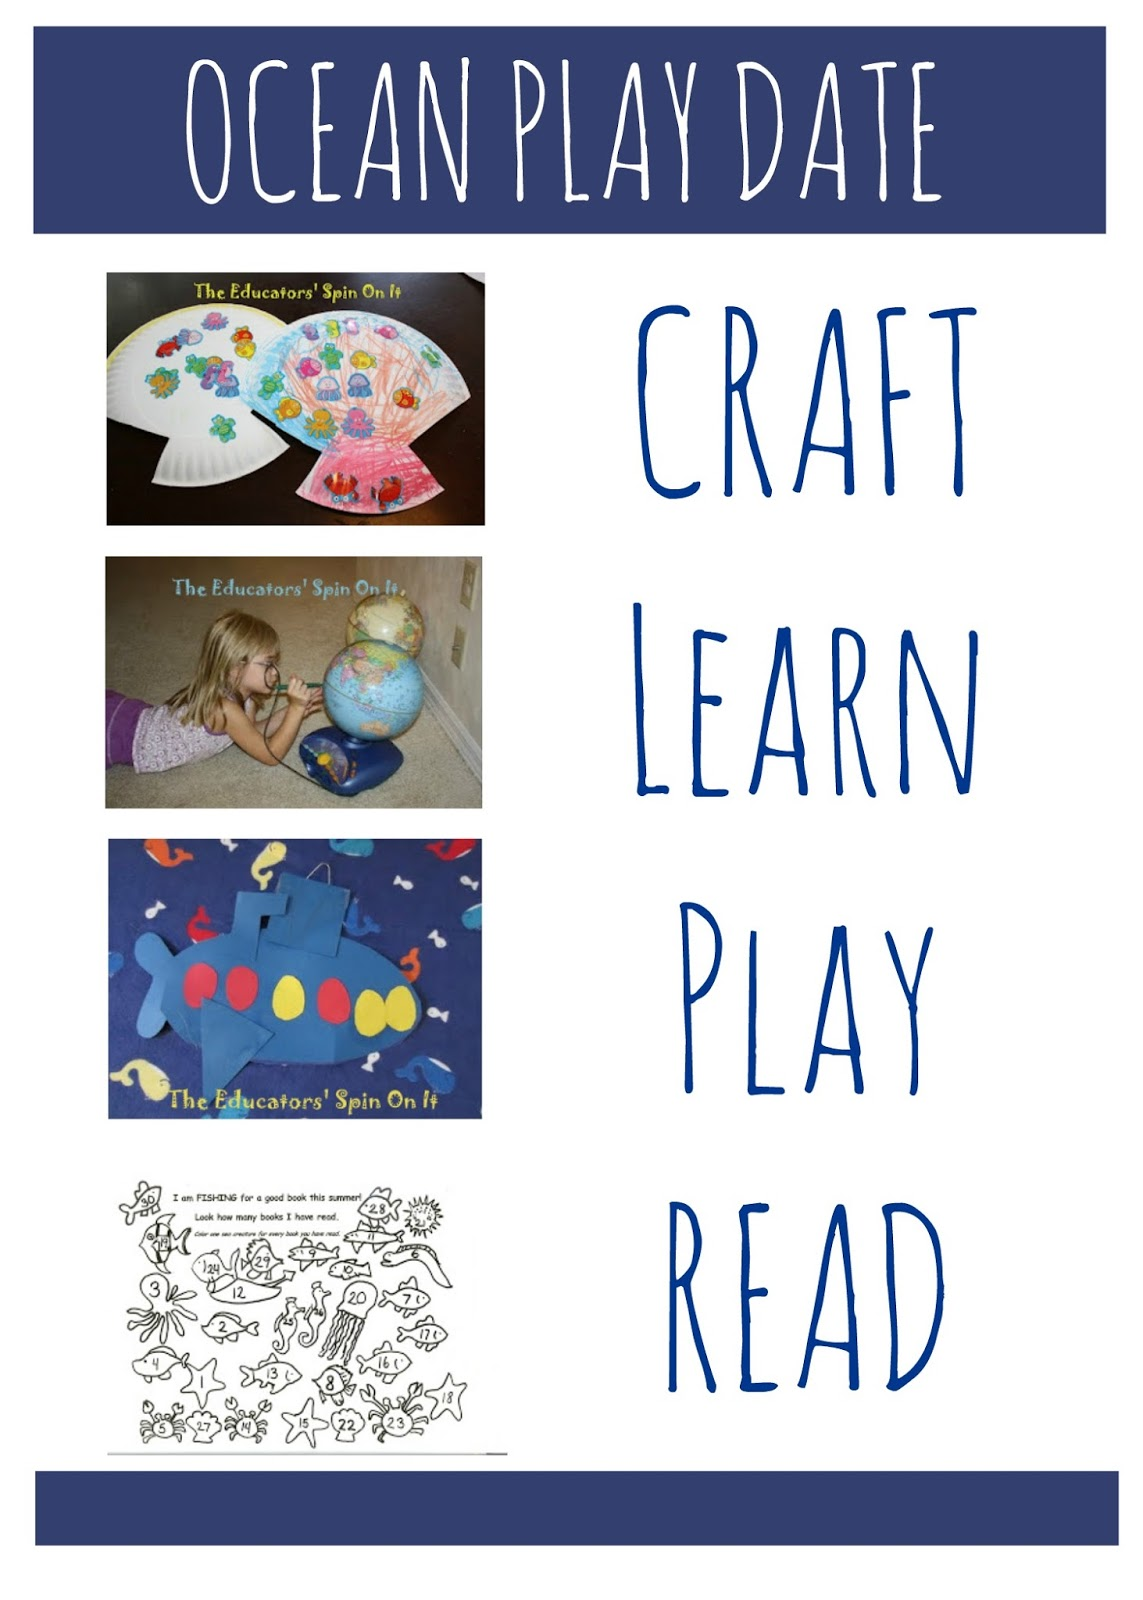 Plan an Ocean Themed Play Date: Craft, Story, Activity and MORE #EDUSpin